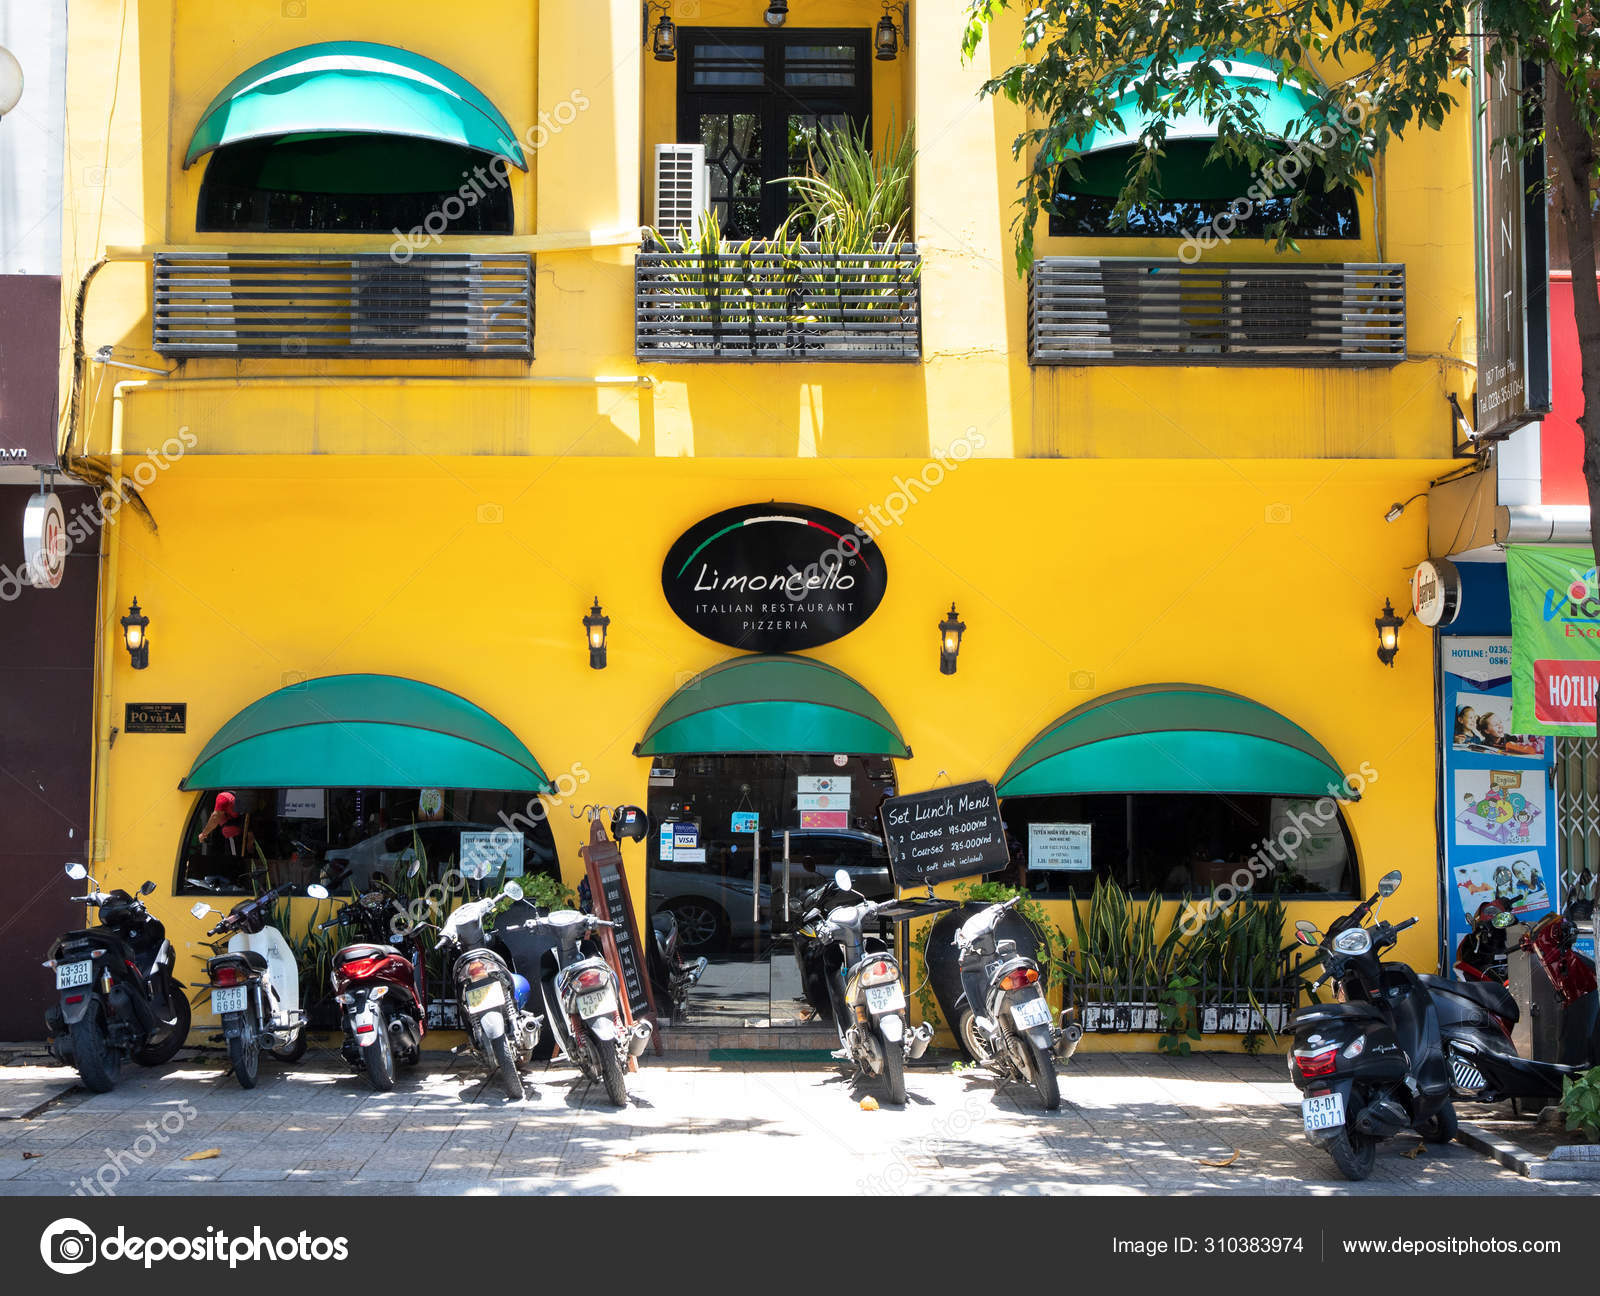 Danang Vietnam 27 Jul 2019 Cozy Cafe In Yellow Building With Green Tents And Motorbikes On Parking Bright Exterior Of Cafe Or Coffee Shop Stock Editorial Photo C Davdeka 310383974